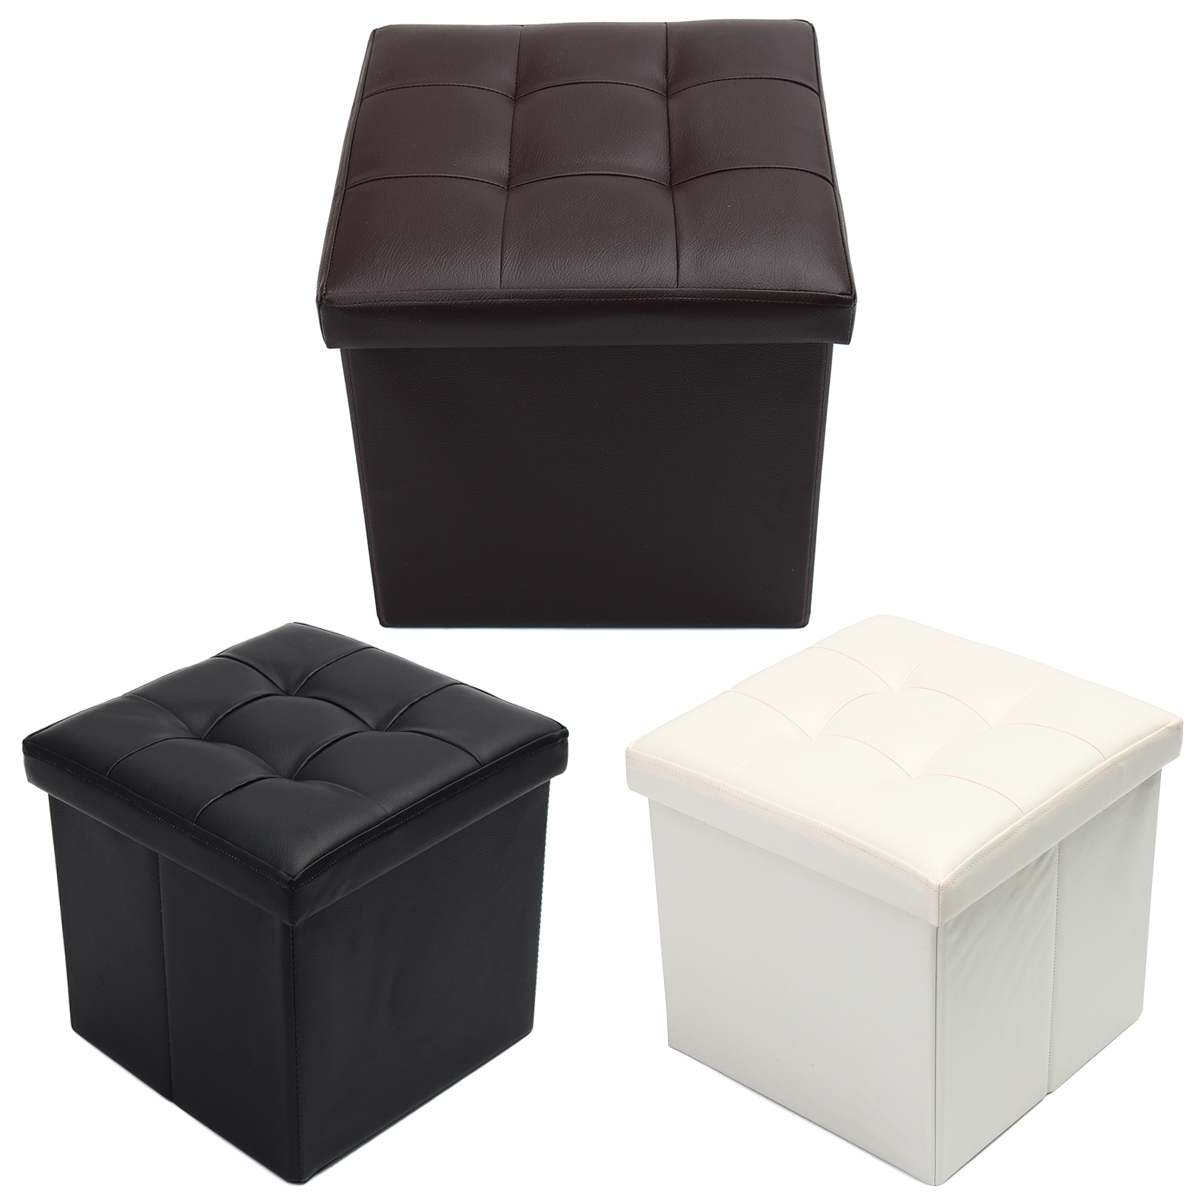 Folding Leather Footstool Sofa Ottoman Footrest Seat Lounge Imitation Leather Footstool Home Room Storage Box Chair 38x38x38cm